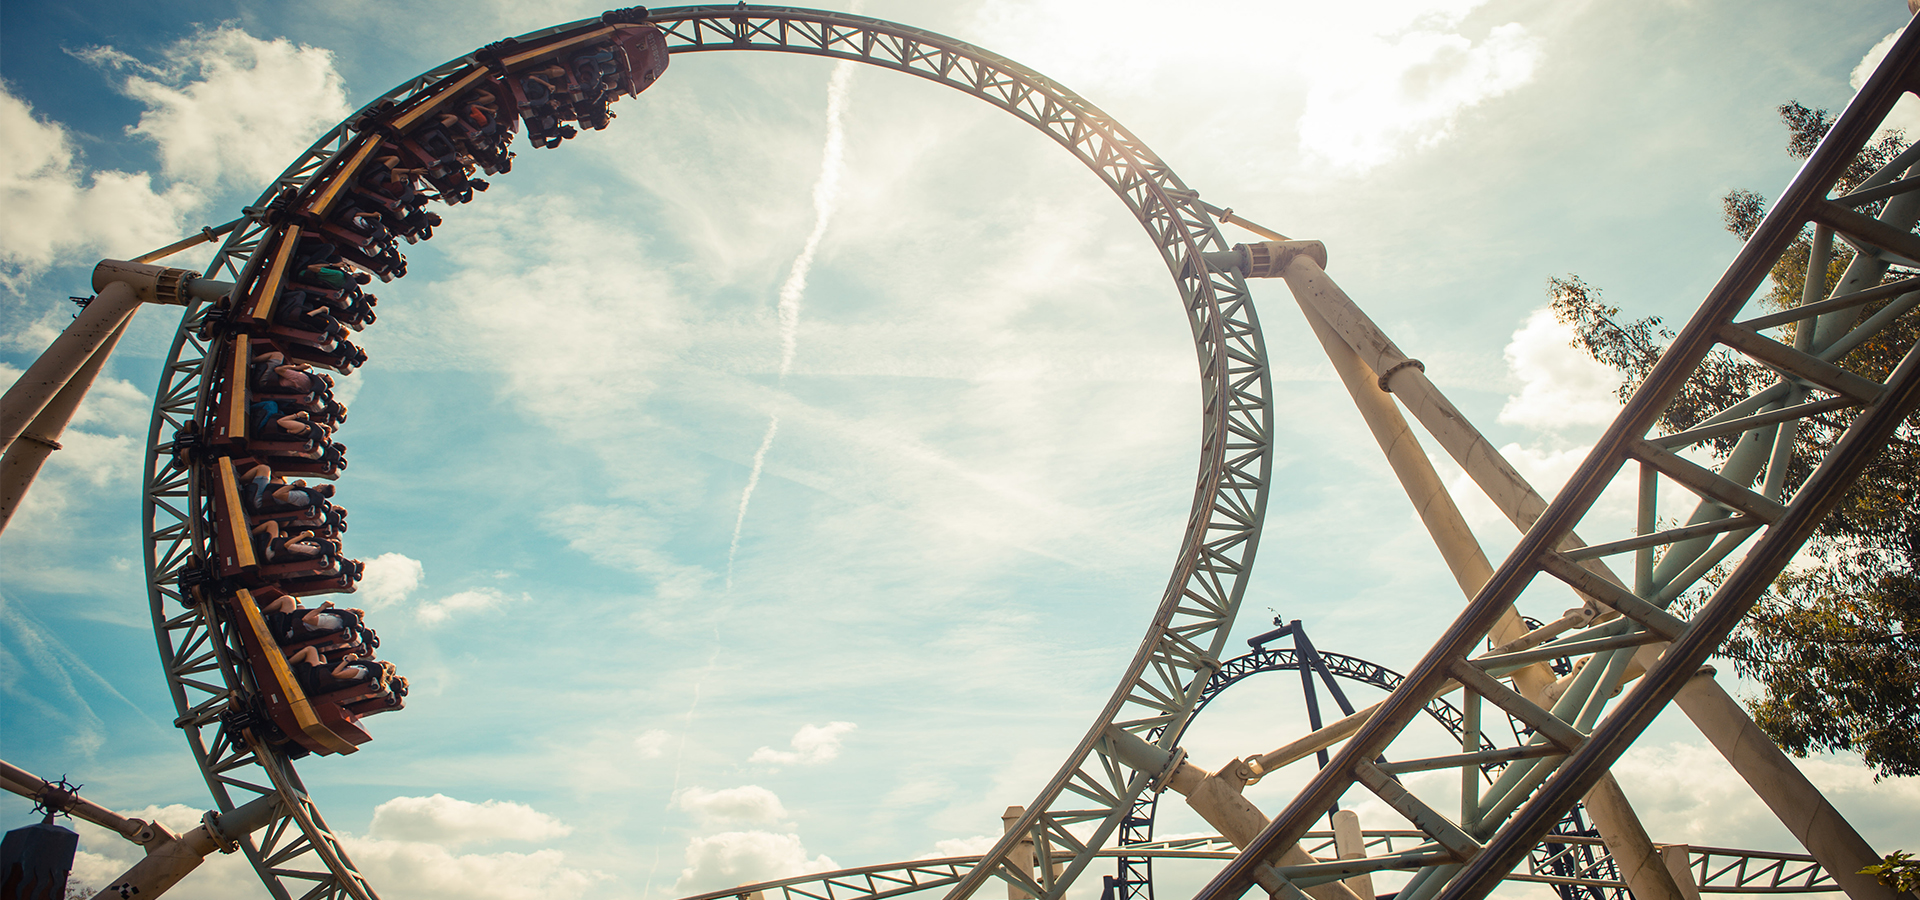 Collosus at THORPE PARK Resort